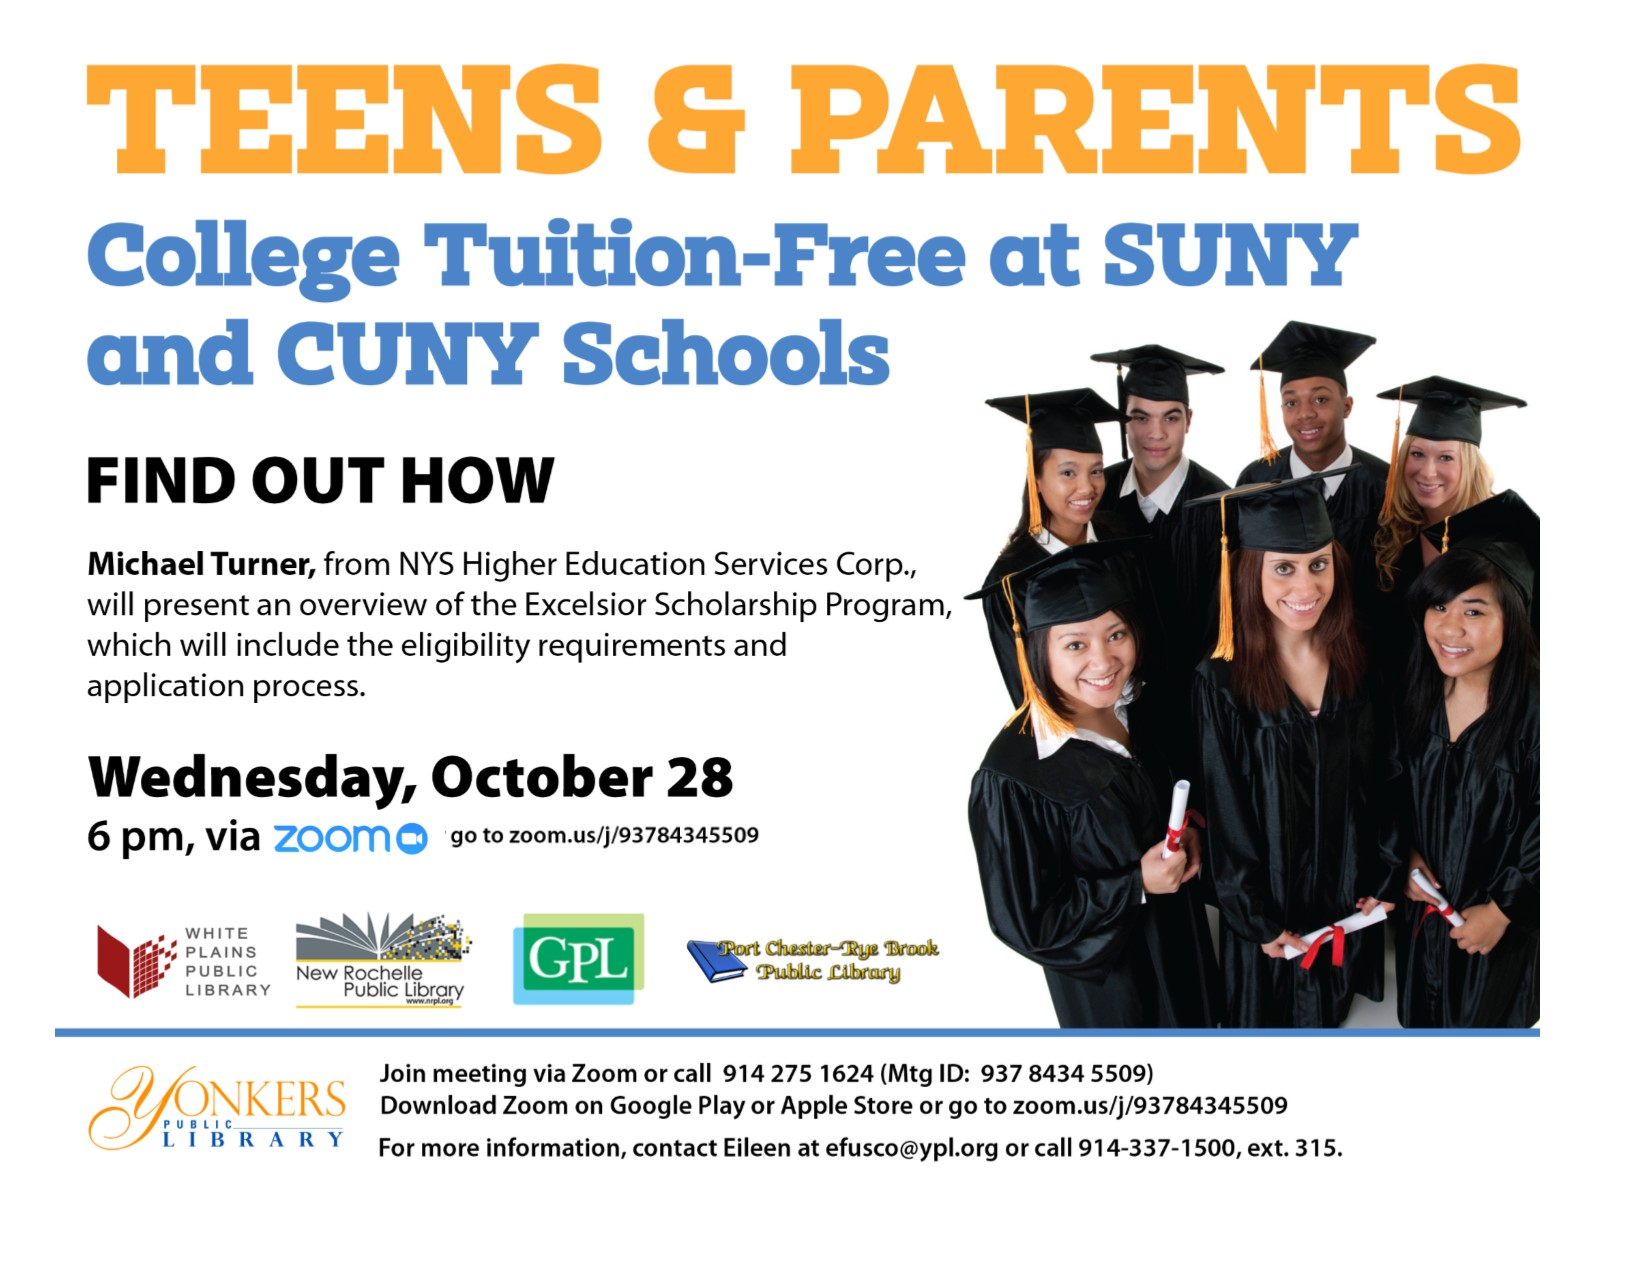 ONLINE The Port Chester-Rye Brook Public Library presents: a Zoom Financial Aid and Paying for College: What Every Student and Parent Needs to Know at Port Chester-Rye Brook Library